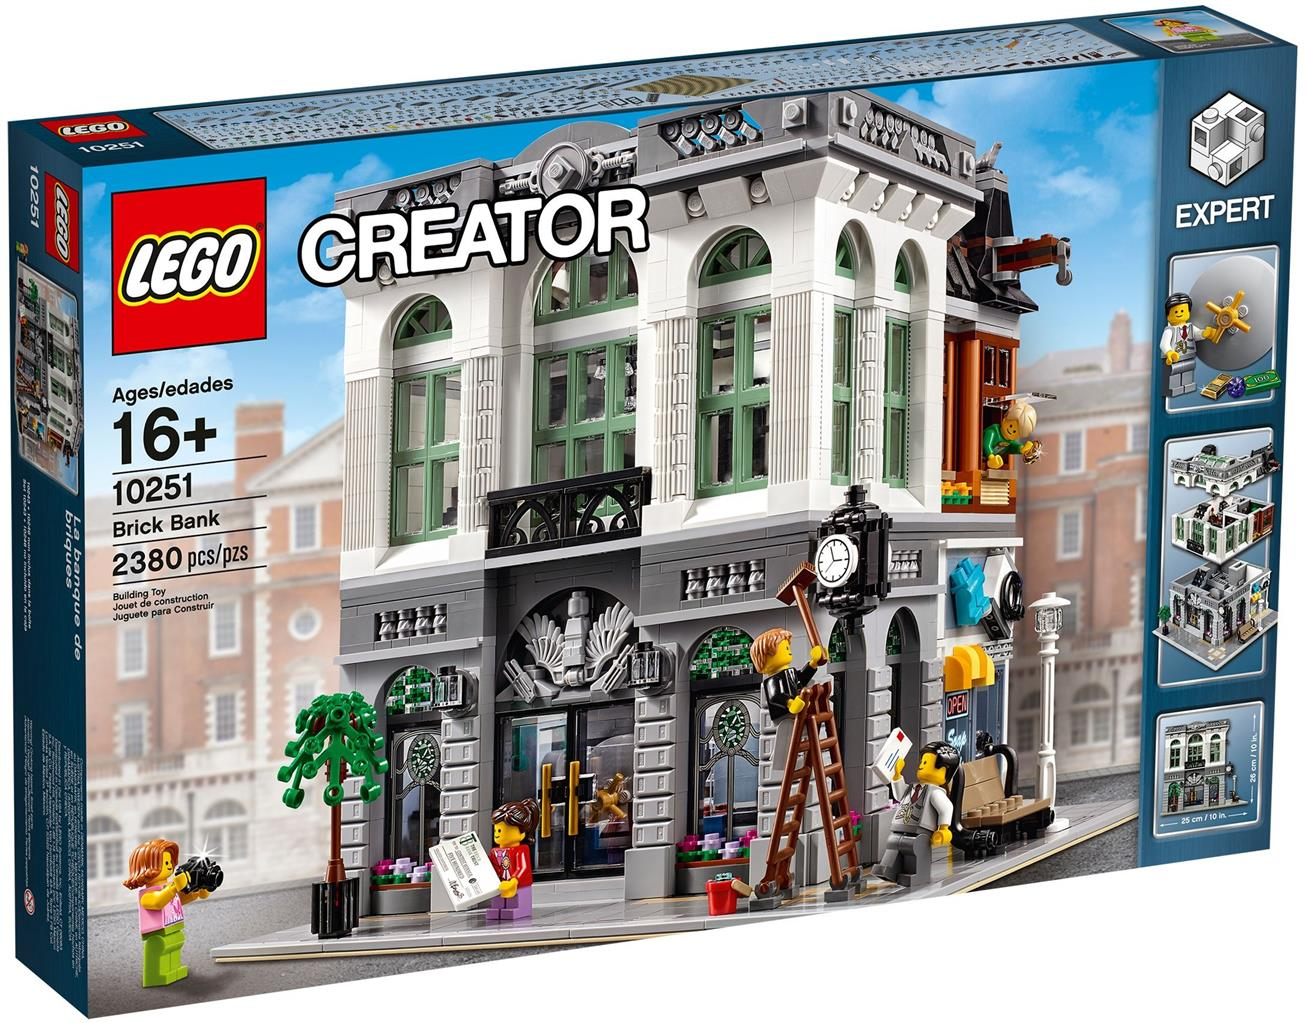 lego 10251 creator expert brick bank end 1 27 2019 5 15 pm. Black Bedroom Furniture Sets. Home Design Ideas